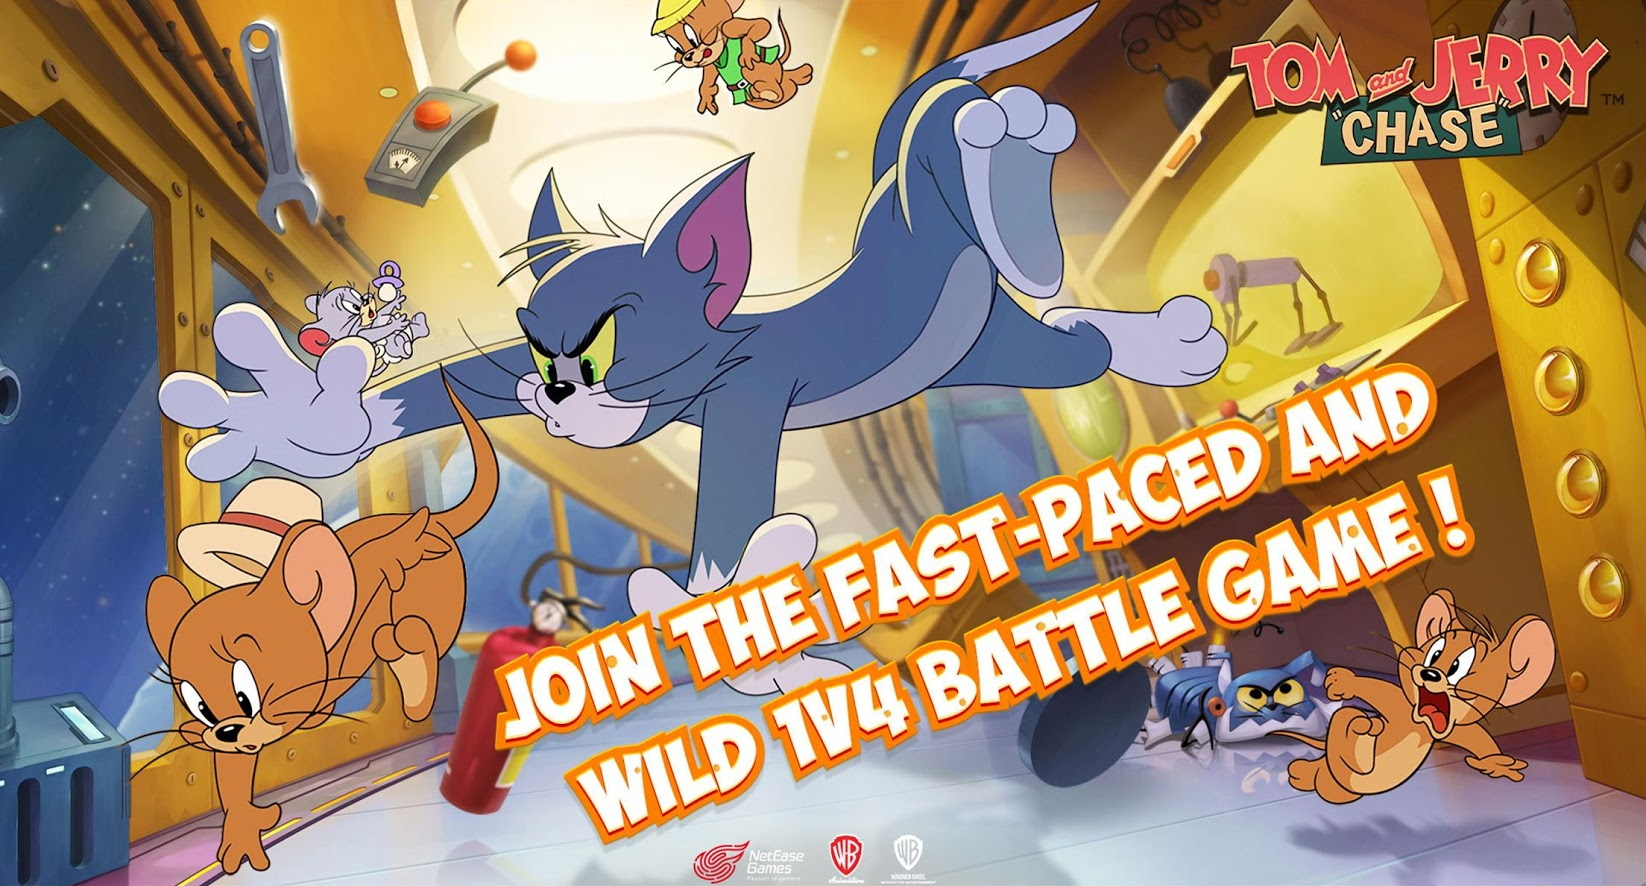 Tom And Jerry Chase Looks Like An Excellent Homage To The Classic Cartoon Out Now In